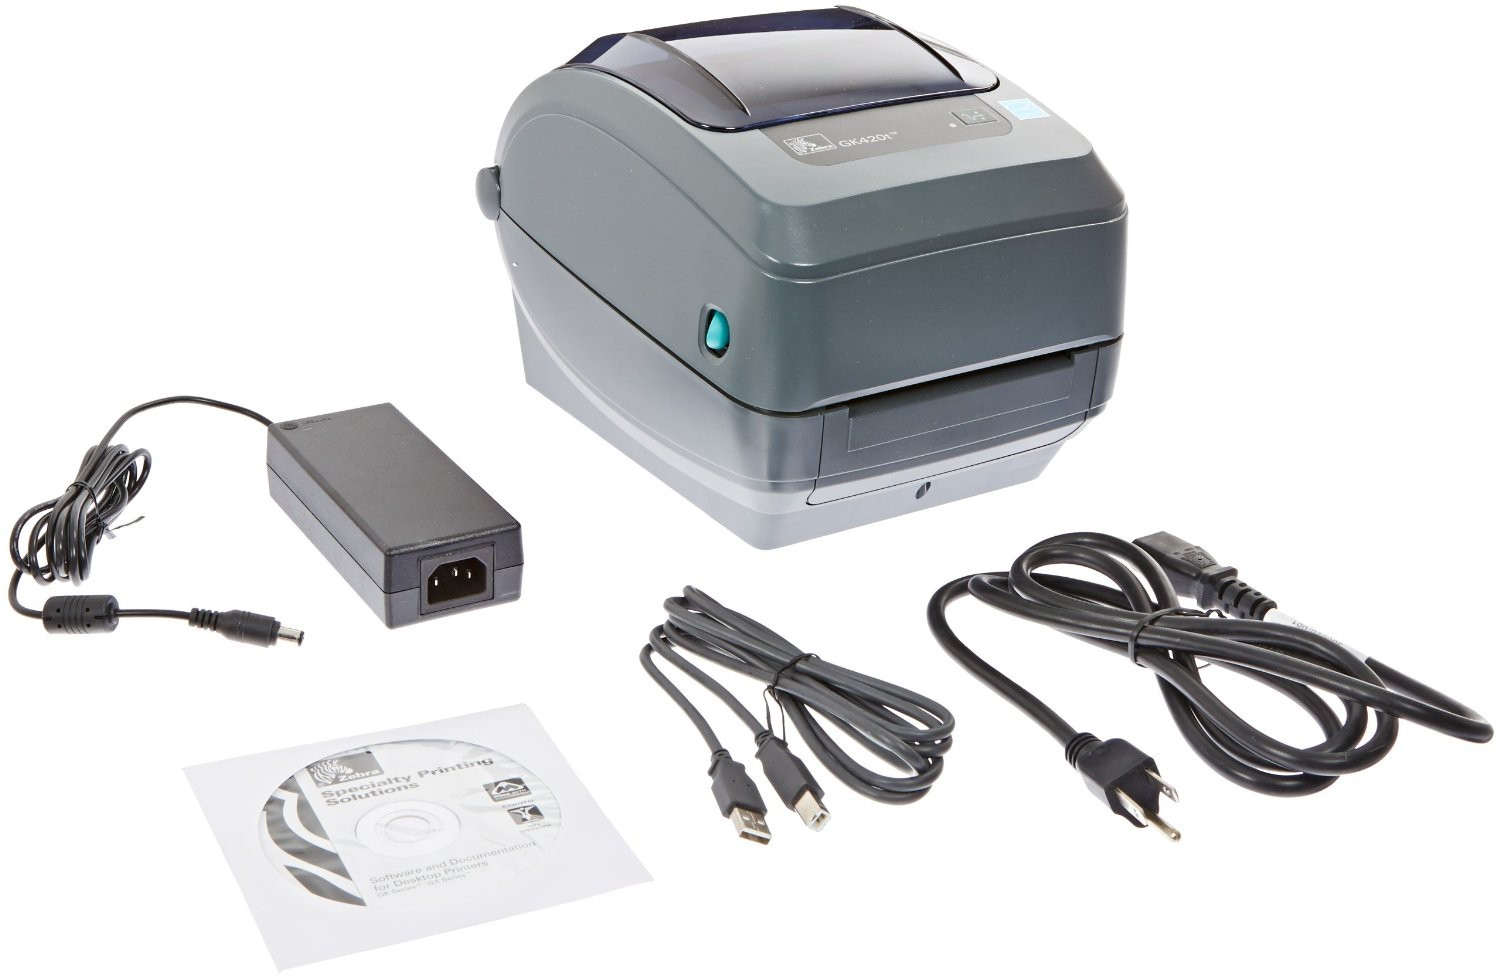 all categories computers networking printers label printers